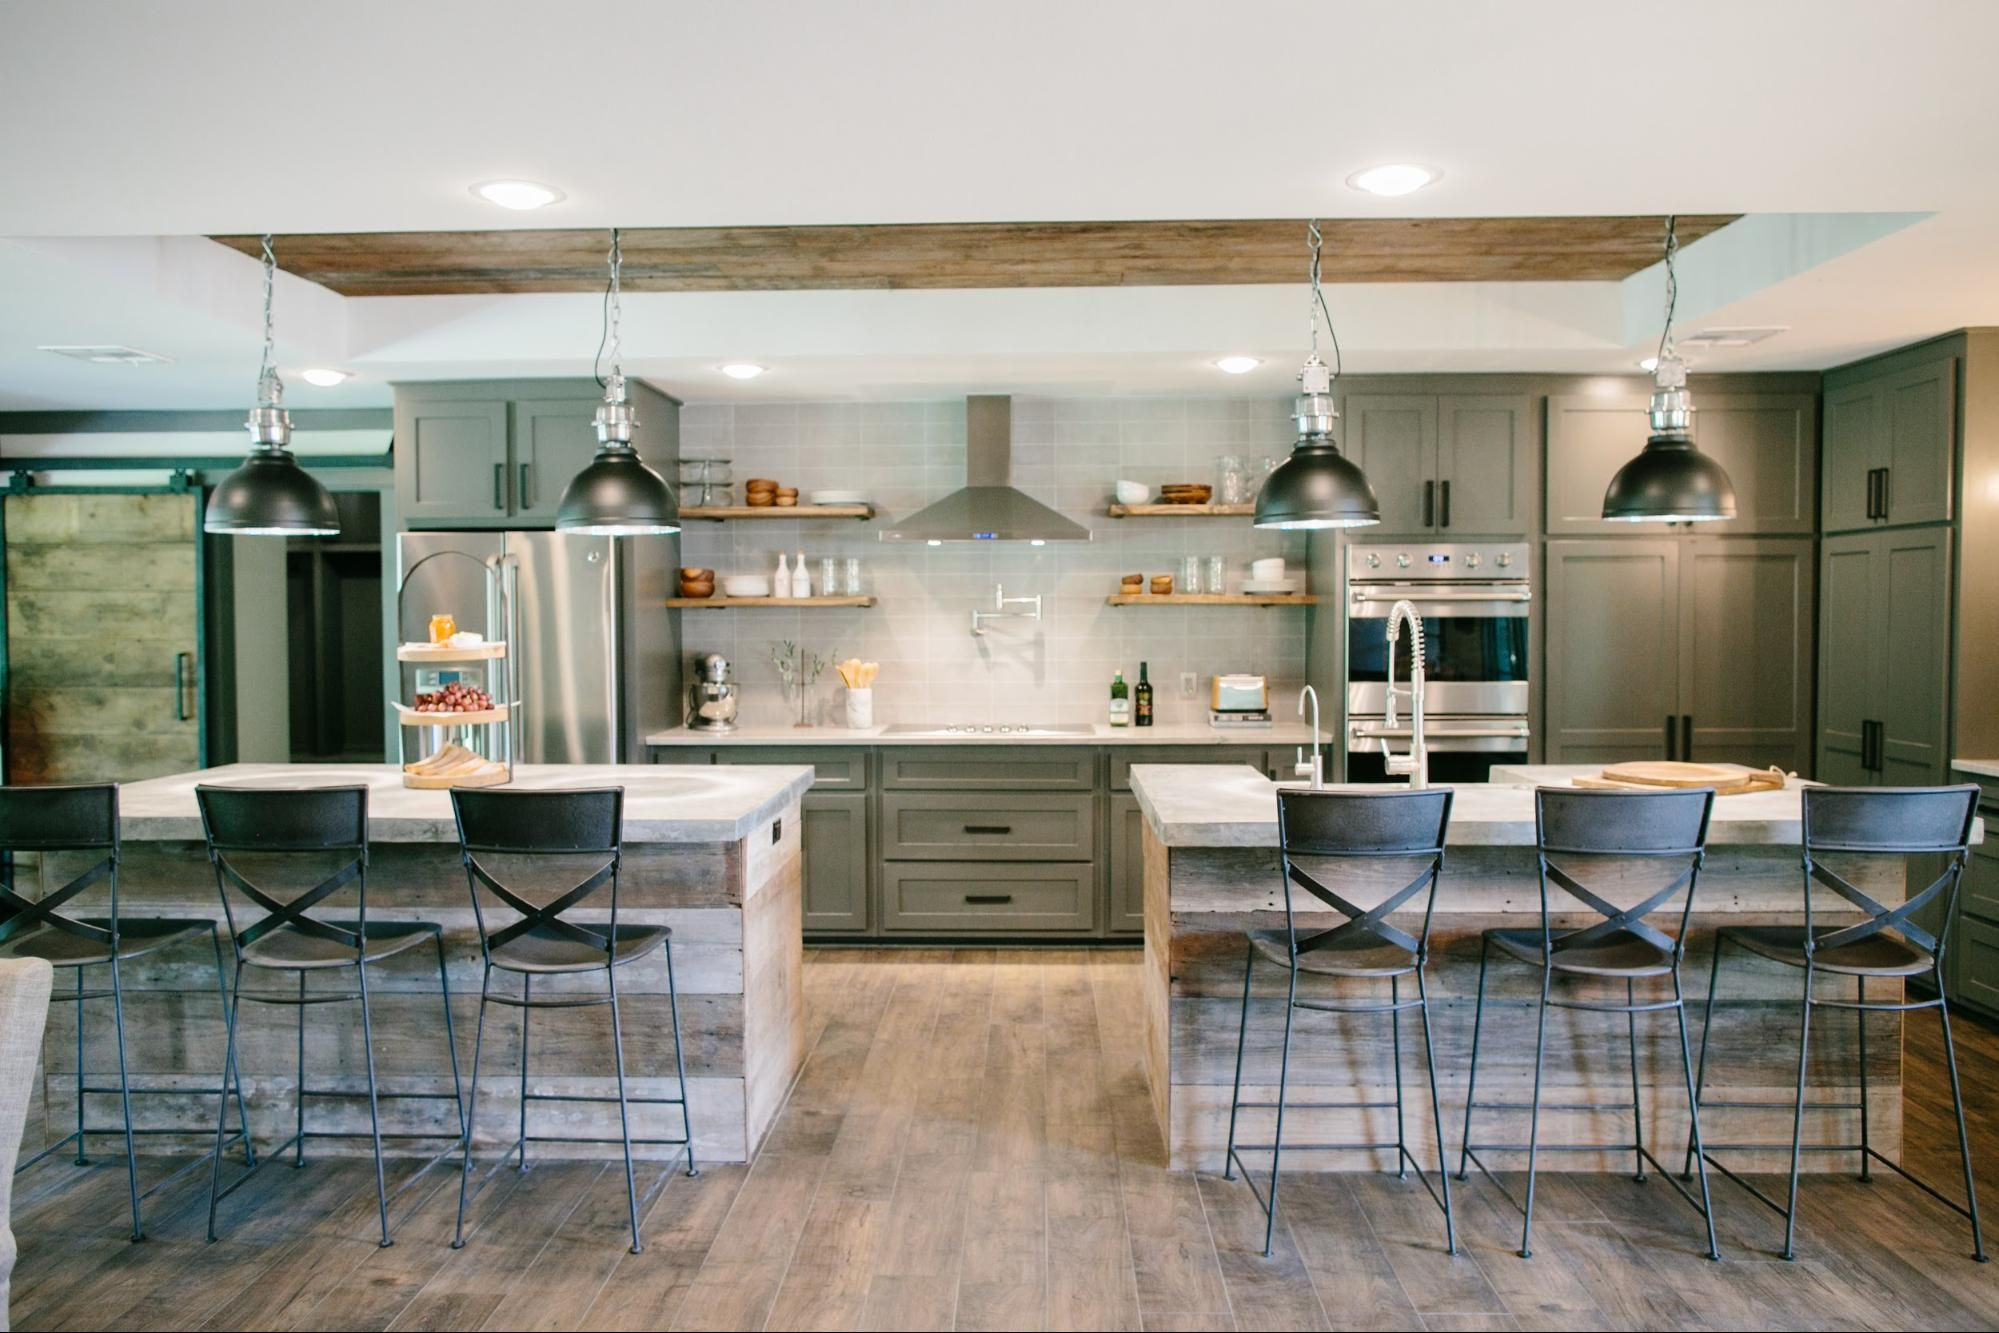 Fixer upper double kitchen island - Episode 10 Love The Double Island